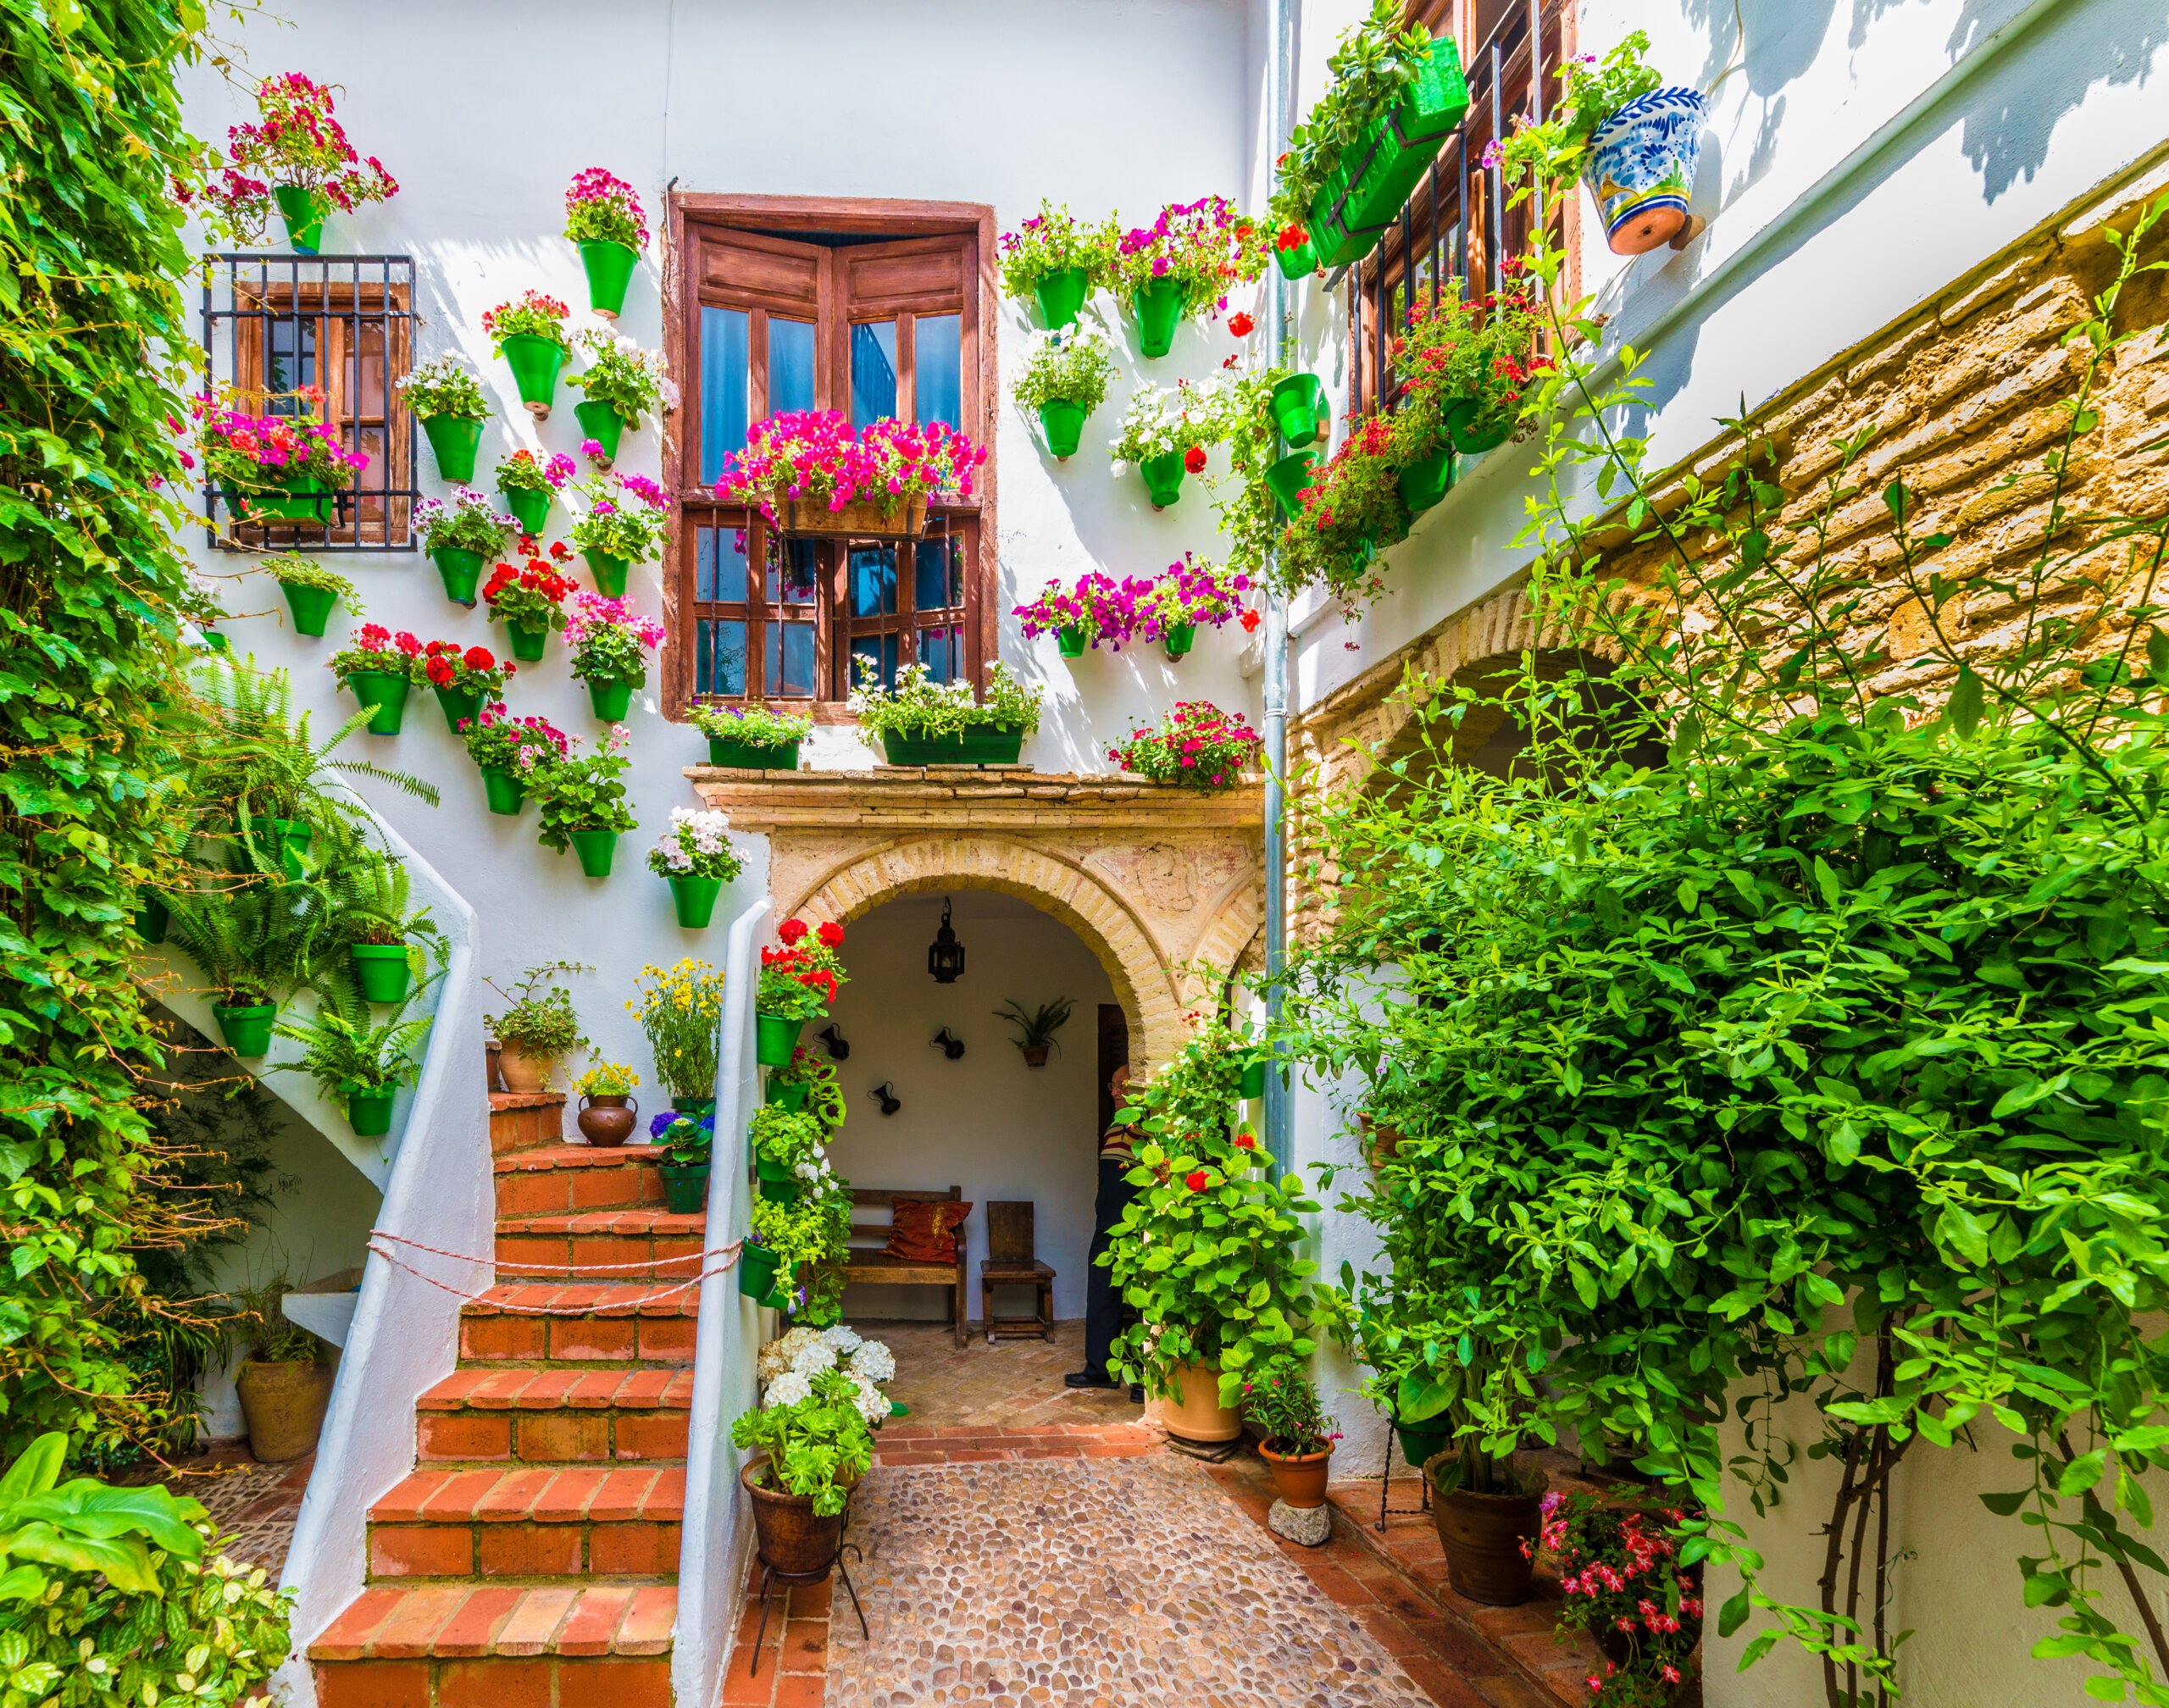 Admire The Traditional Flower Houses During The Cordoba Tour From Granada